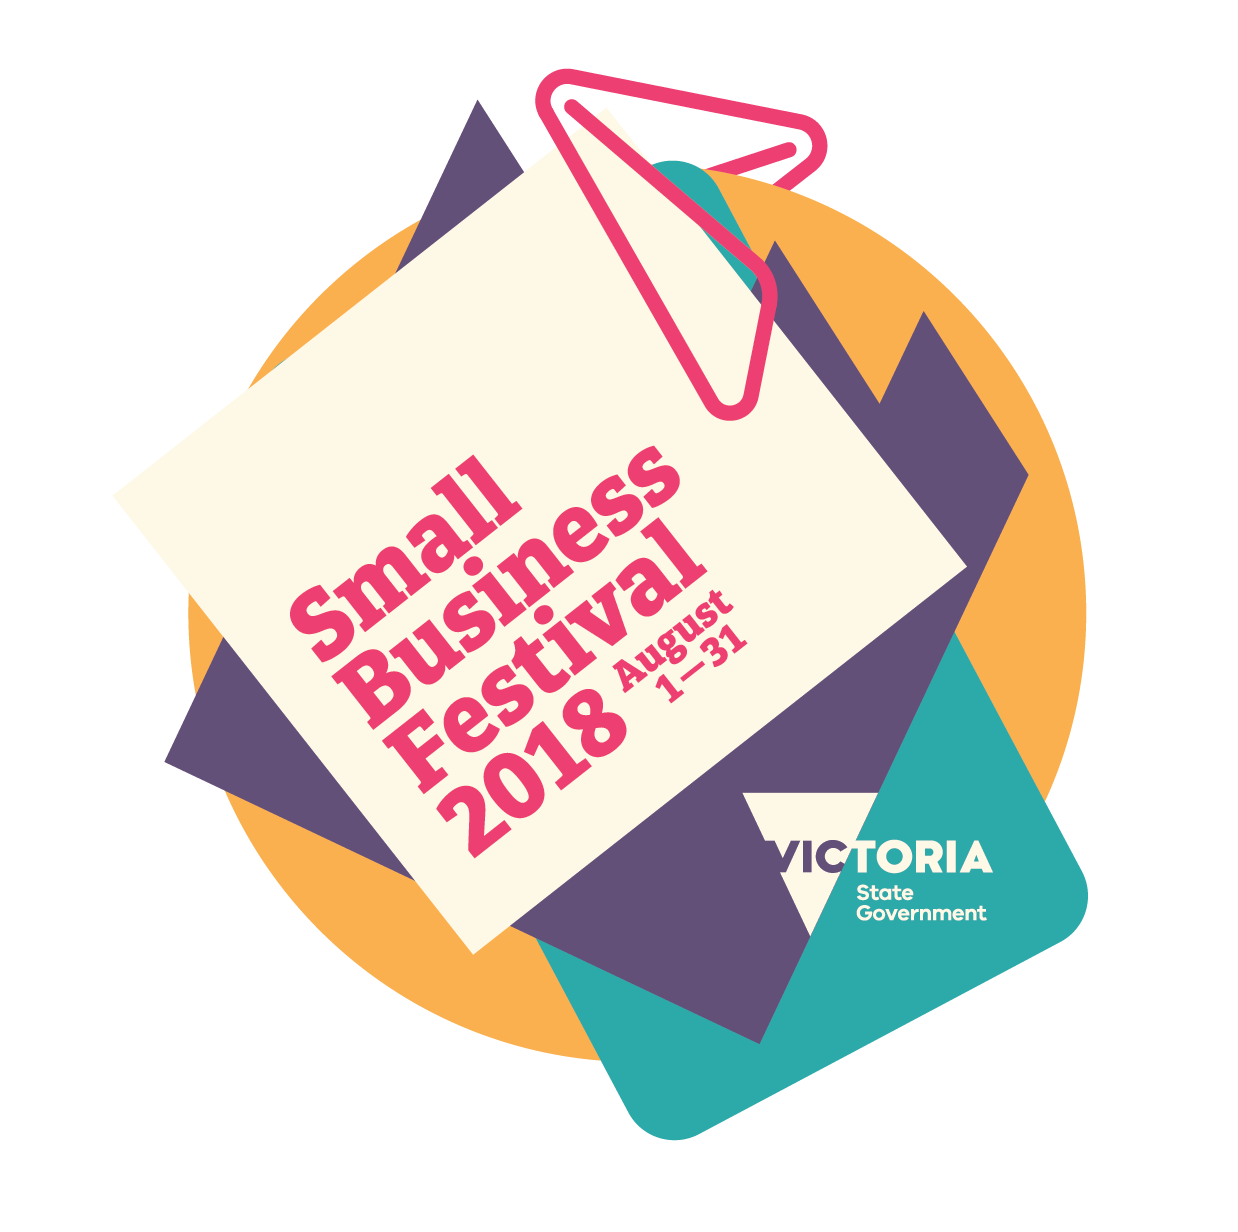 Small Business Festival 2018 August 1 - 31